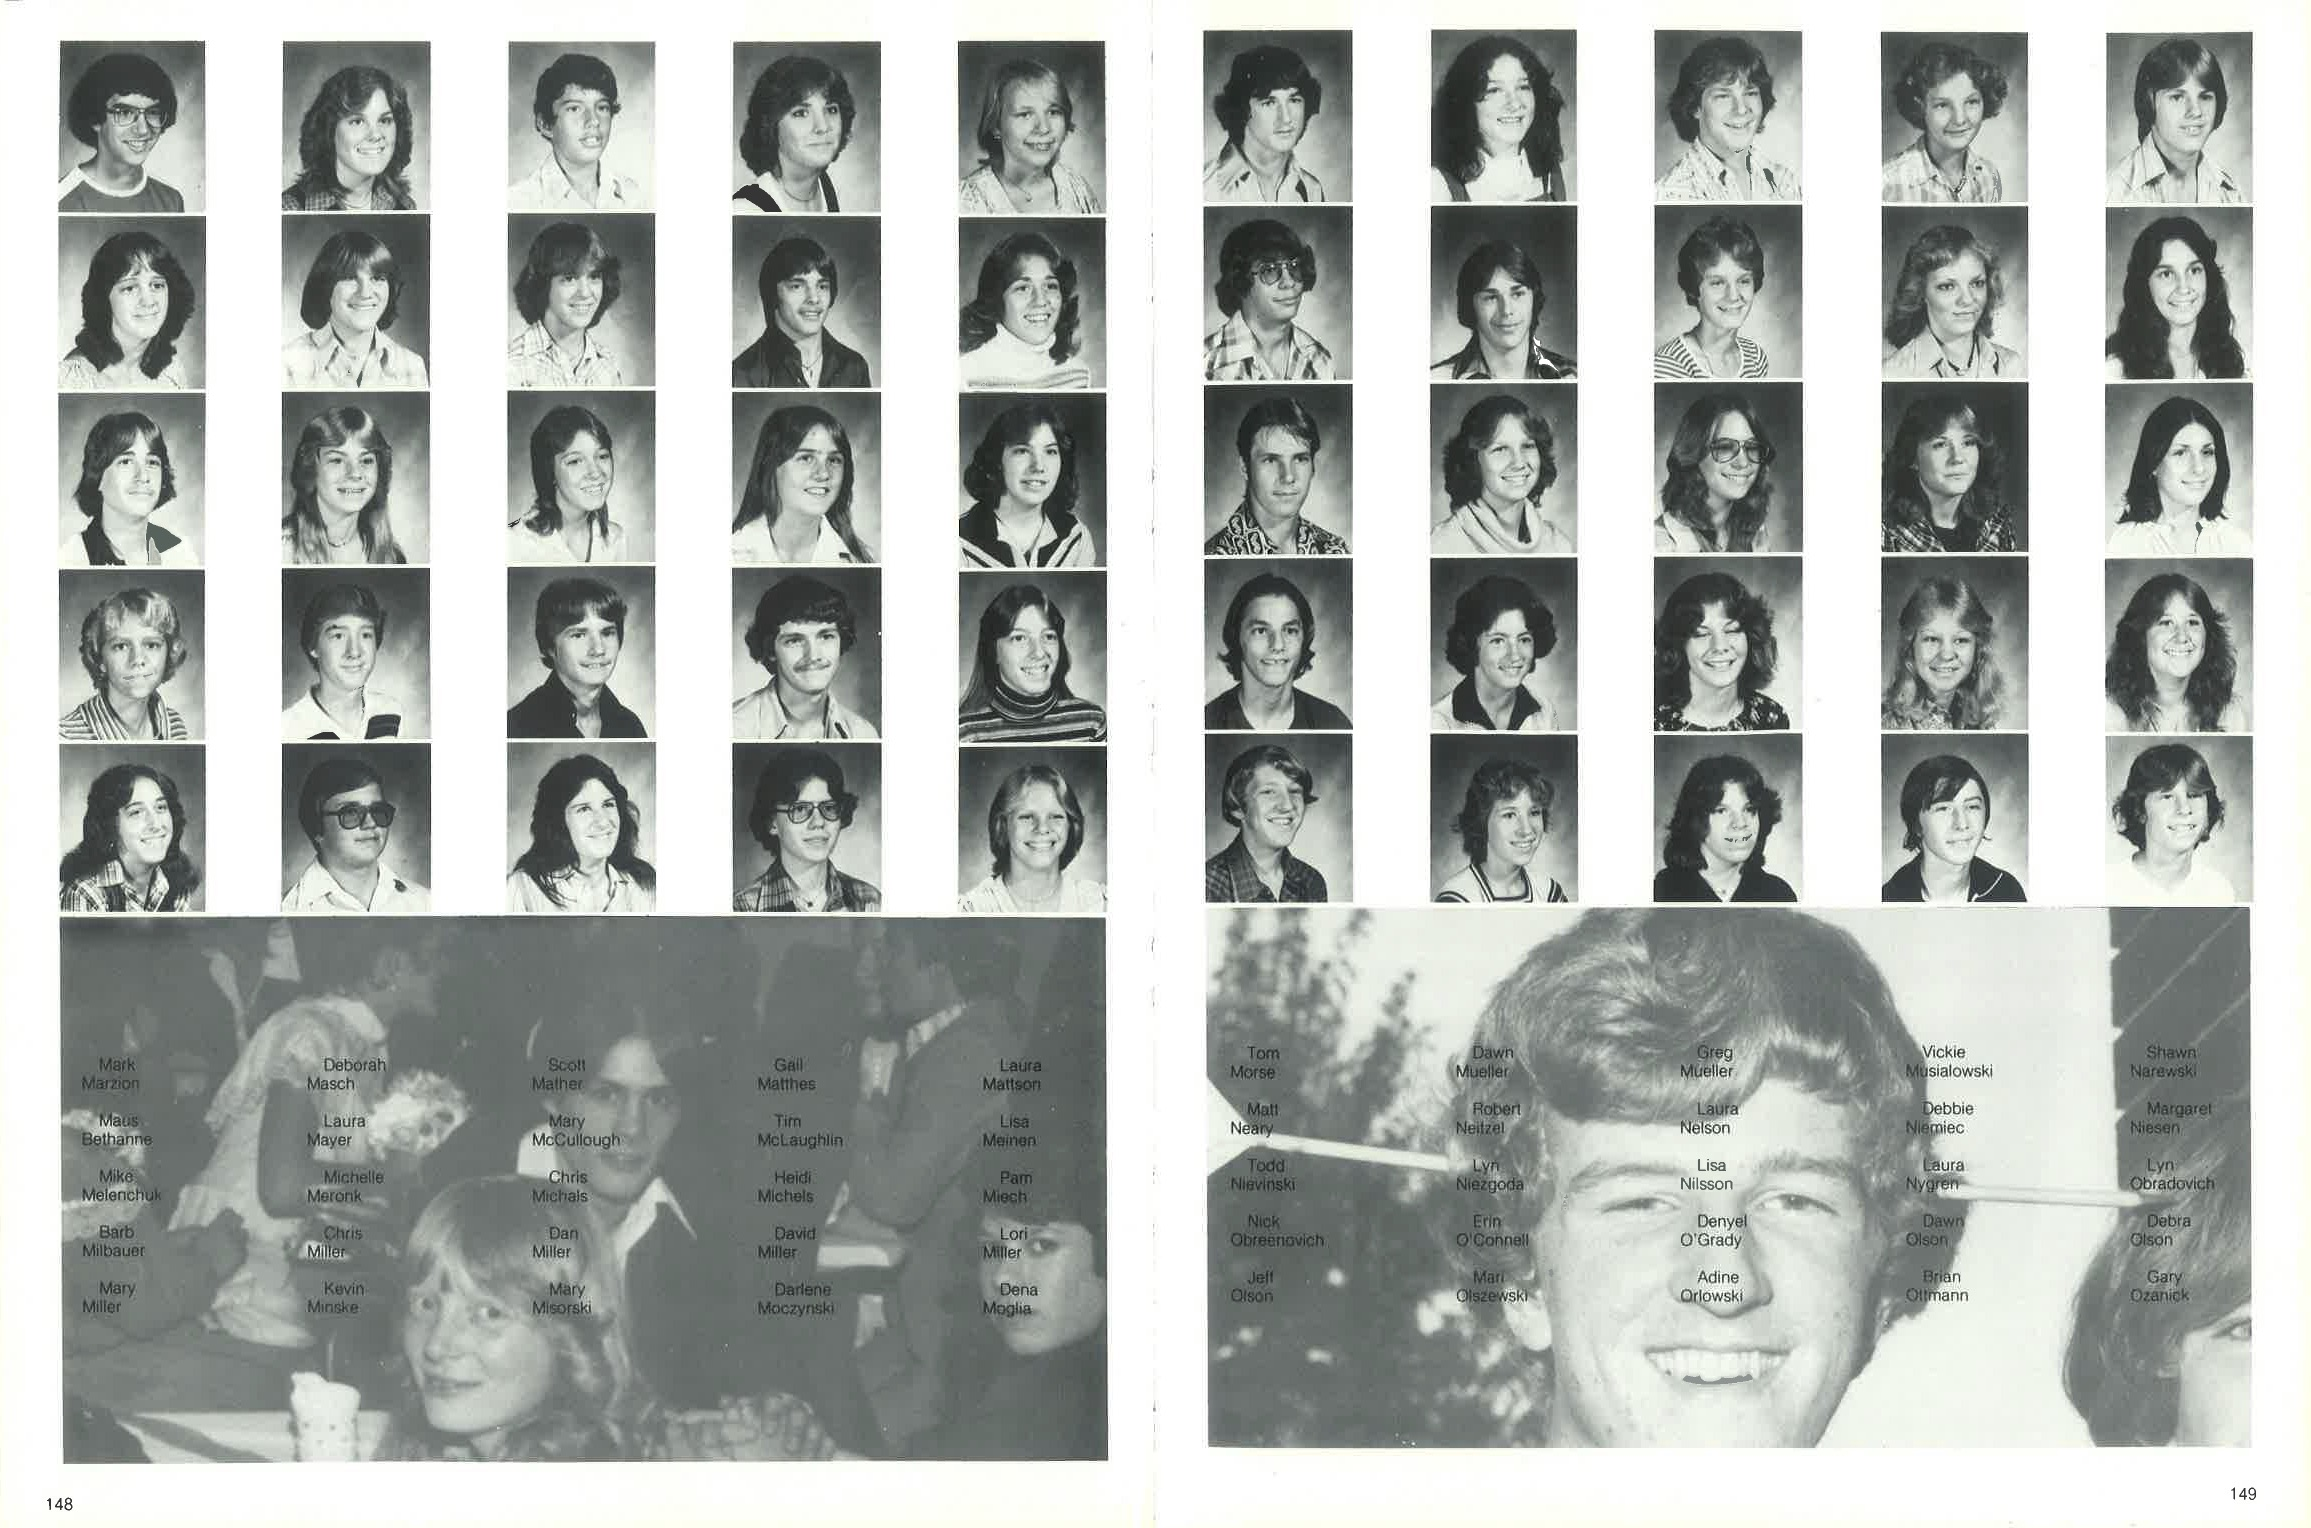 1979_Yearbook_140.jpg